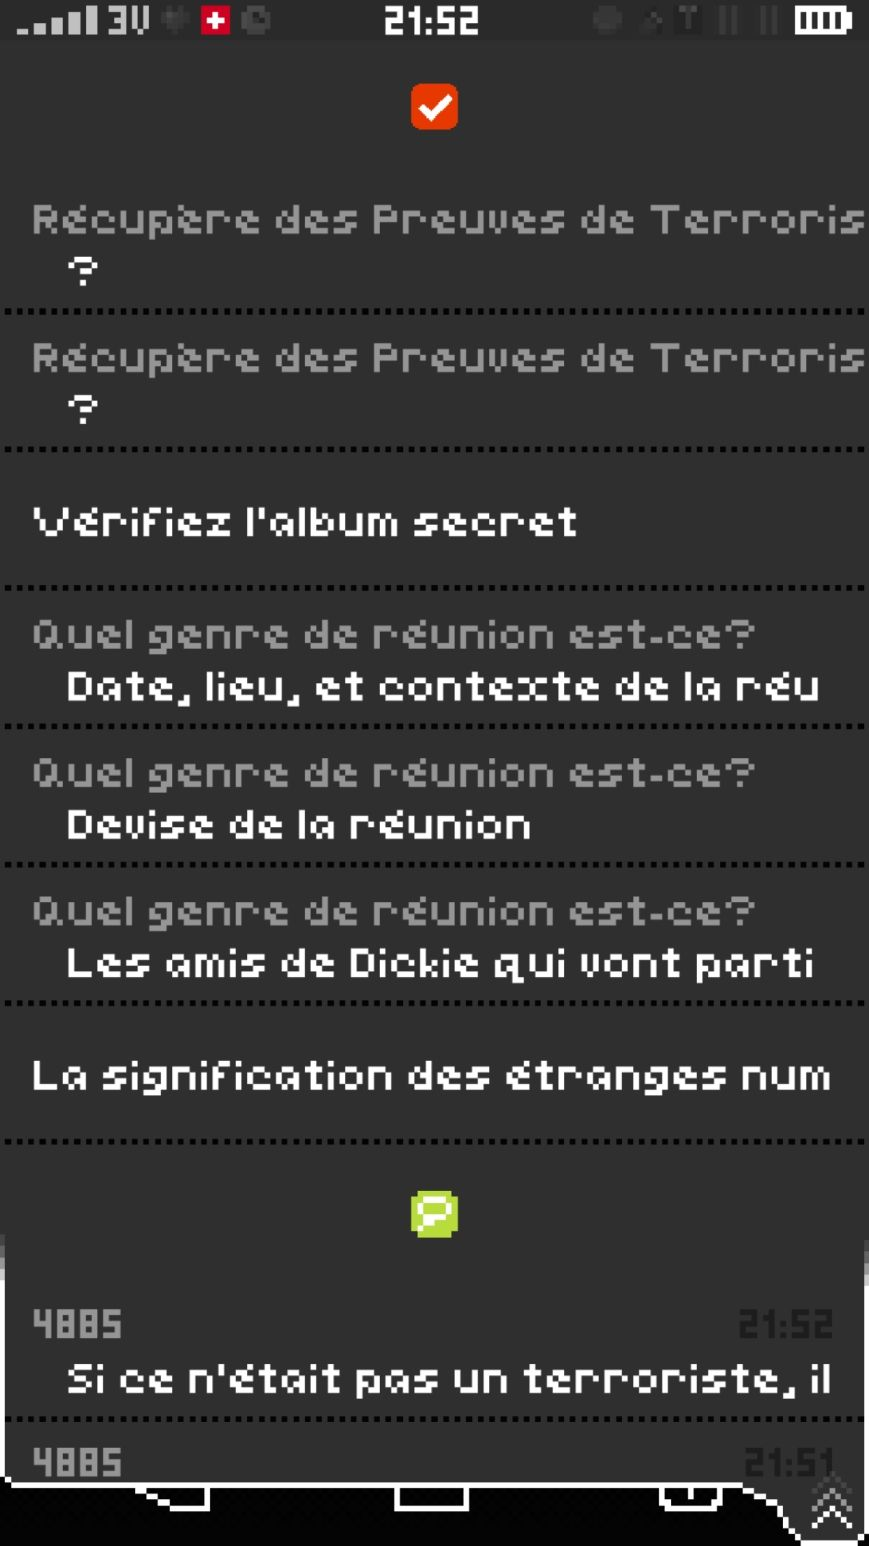 Replica (copie d'écran 7 sur Android)